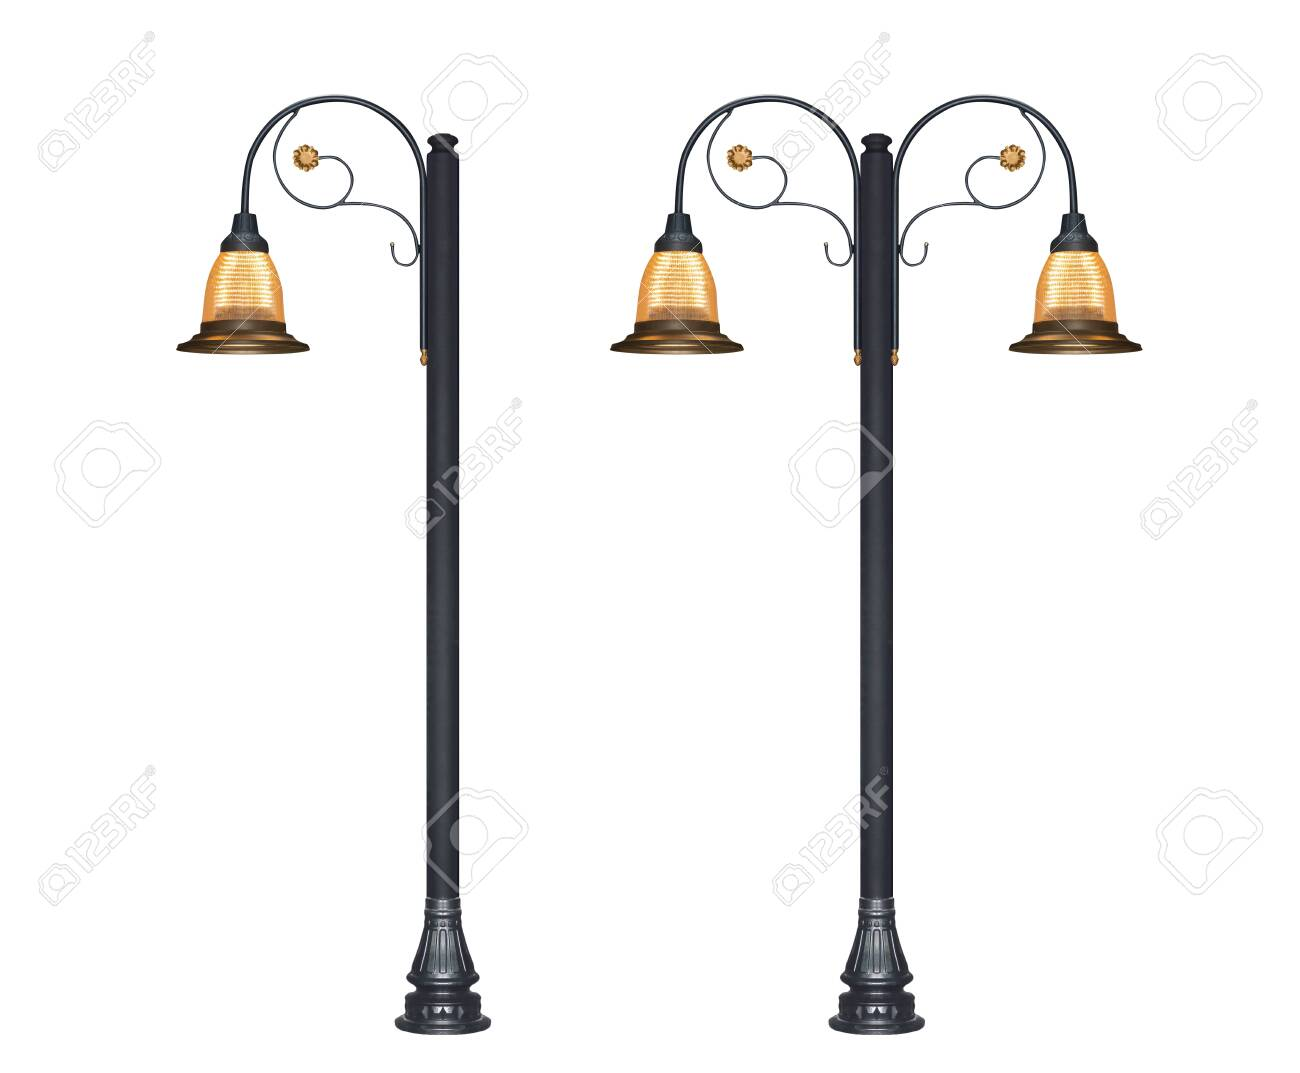 Street Lamp posts isolated on white background - 147145031